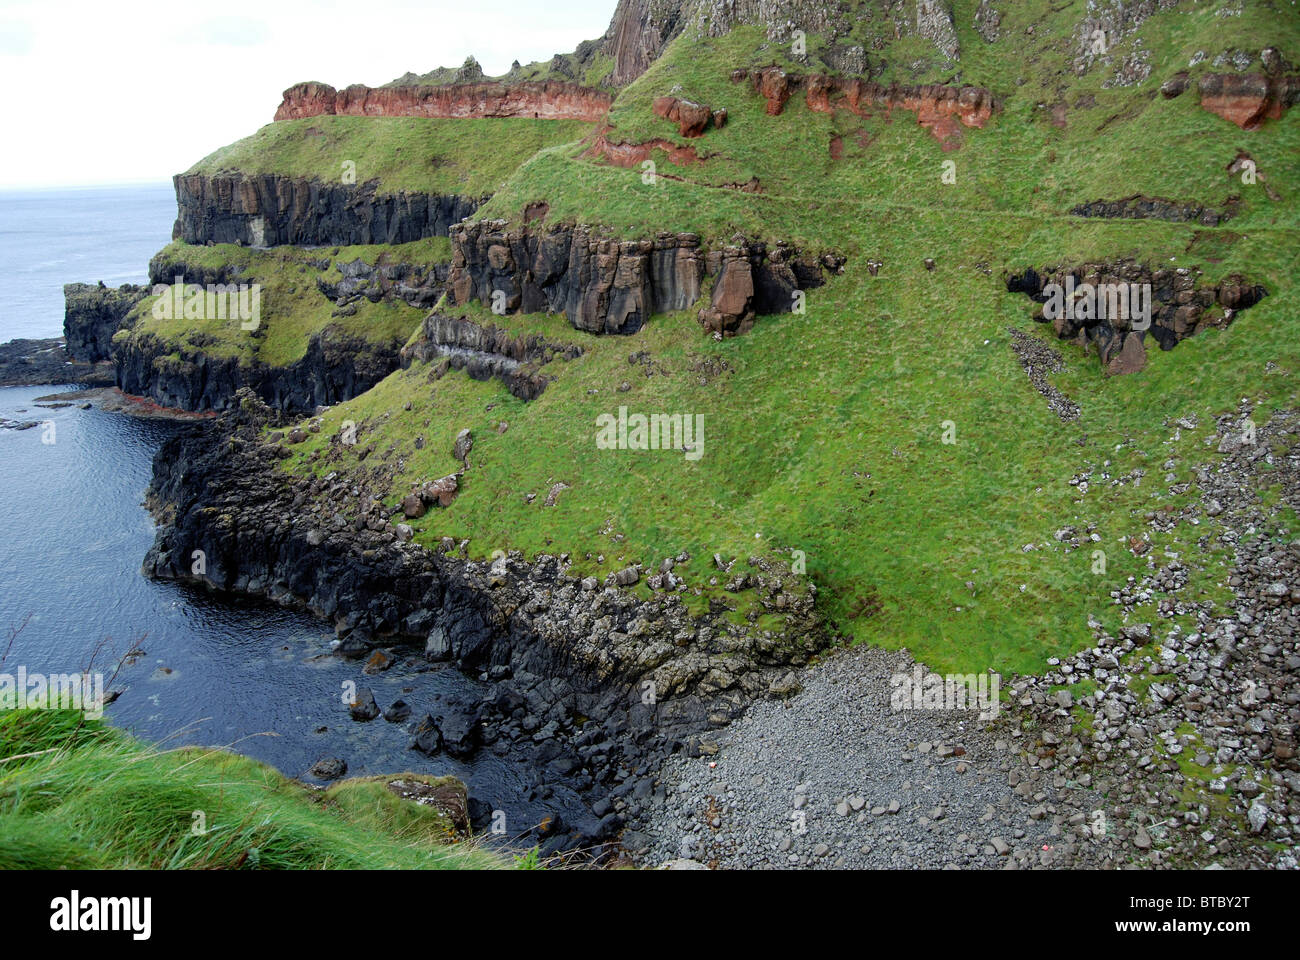 Cliff formations at the Giants Causeway, County Antrim, Northern Ireland - Stock Image